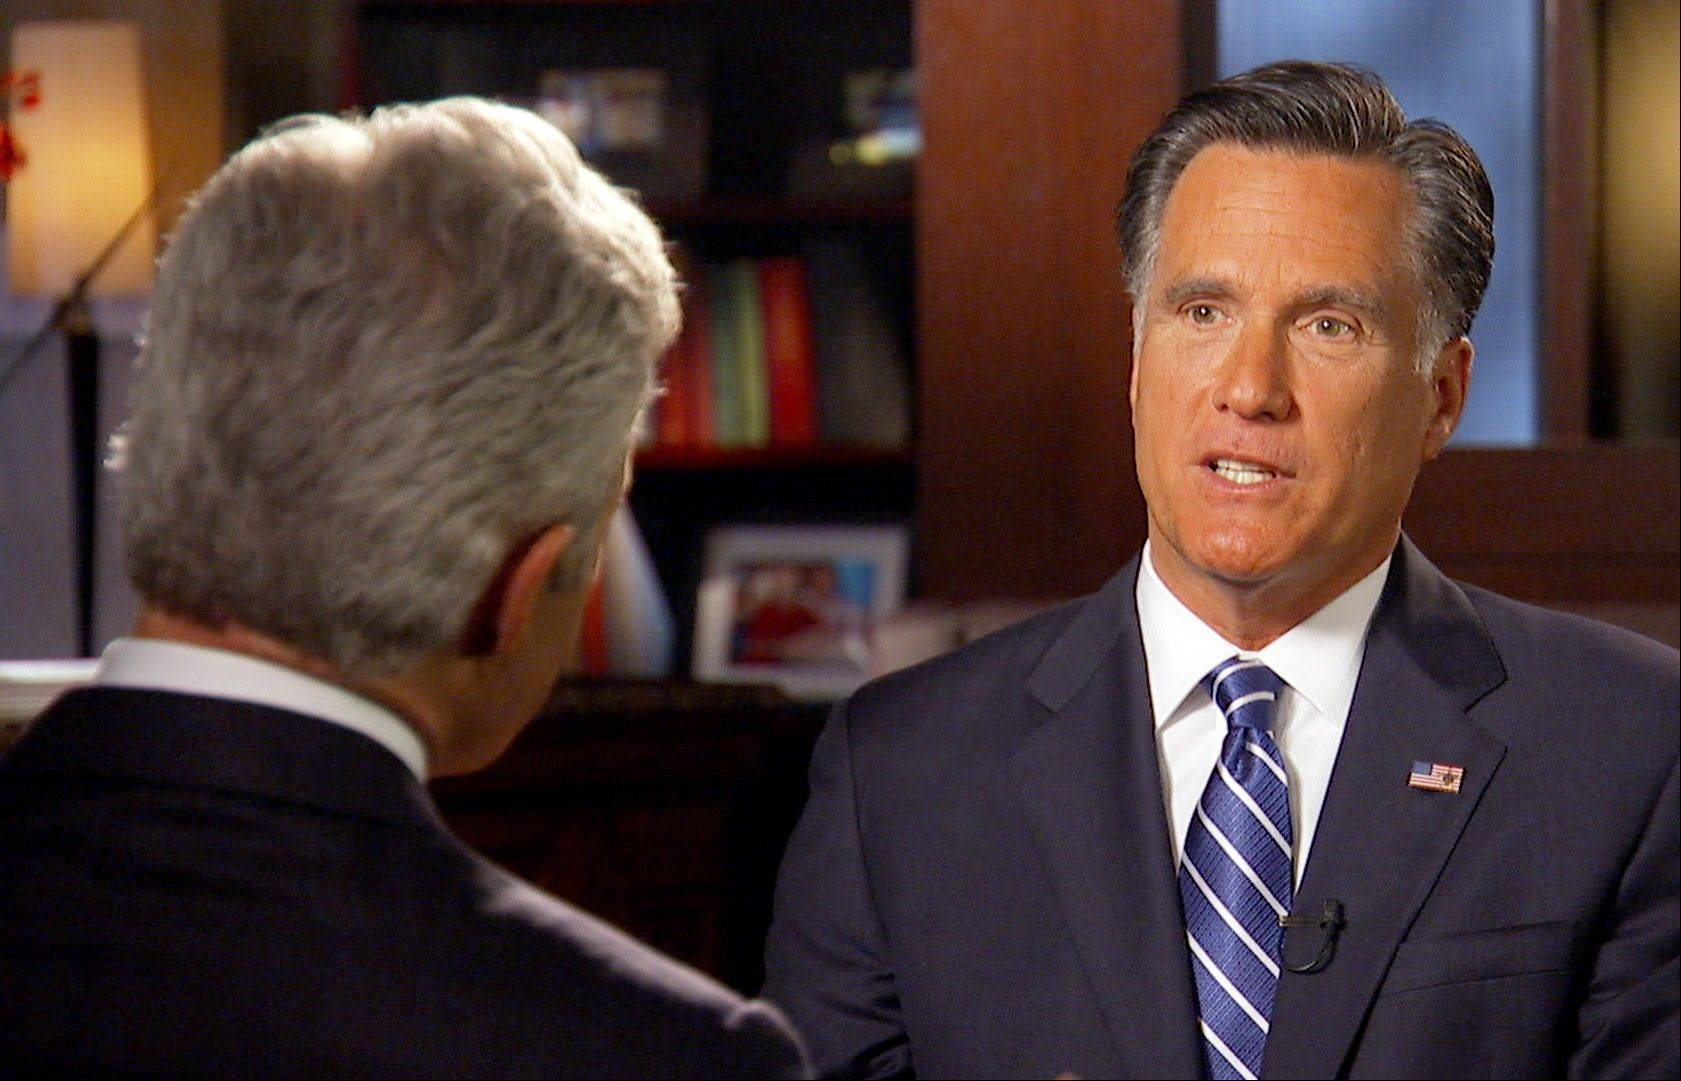 Romney's plan for Medicare: Important details still in flux